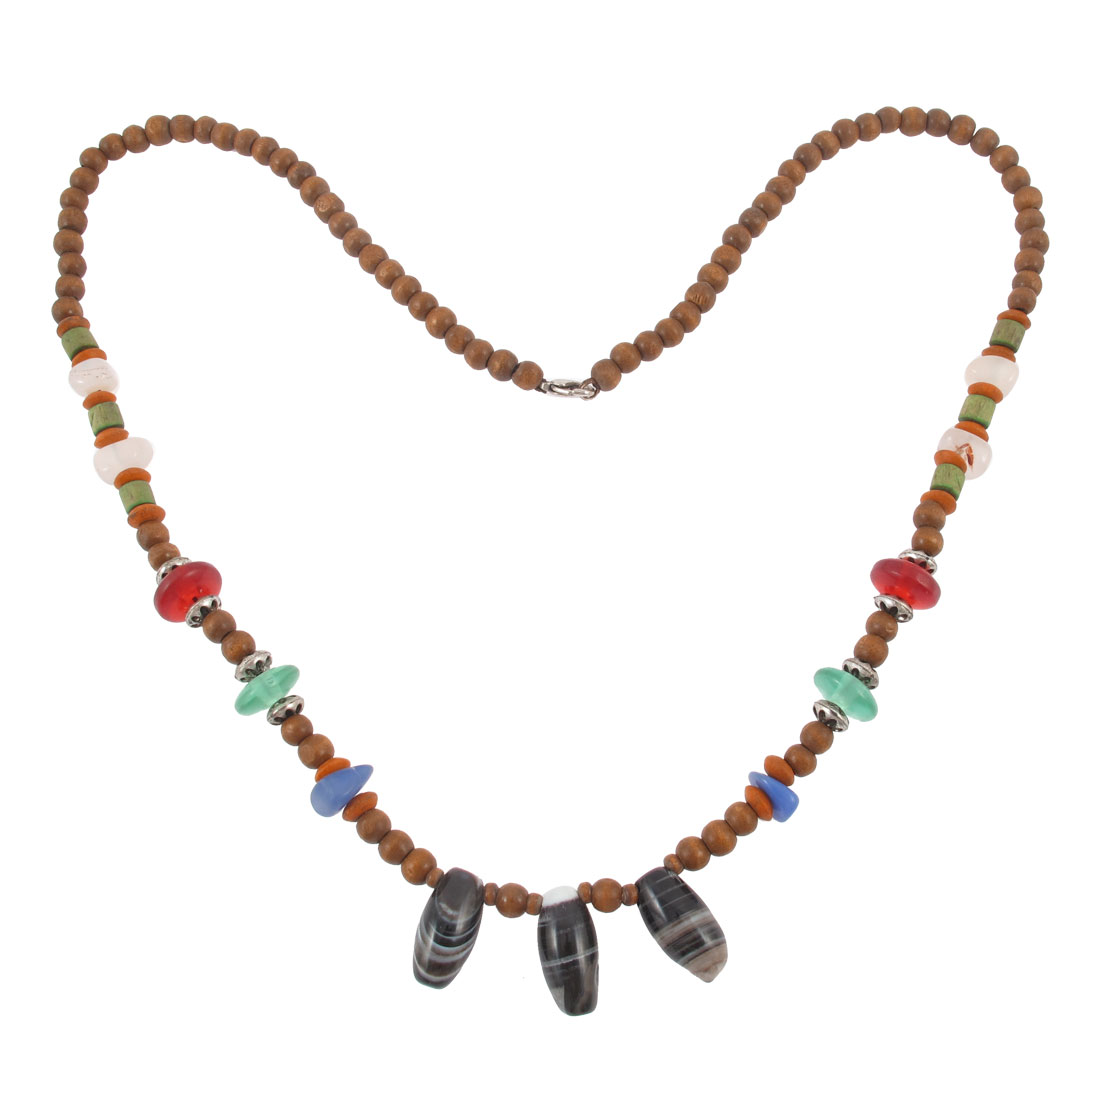 Wooden Beads Linked Lobster Clasp Closure Necklace Gift Pendant